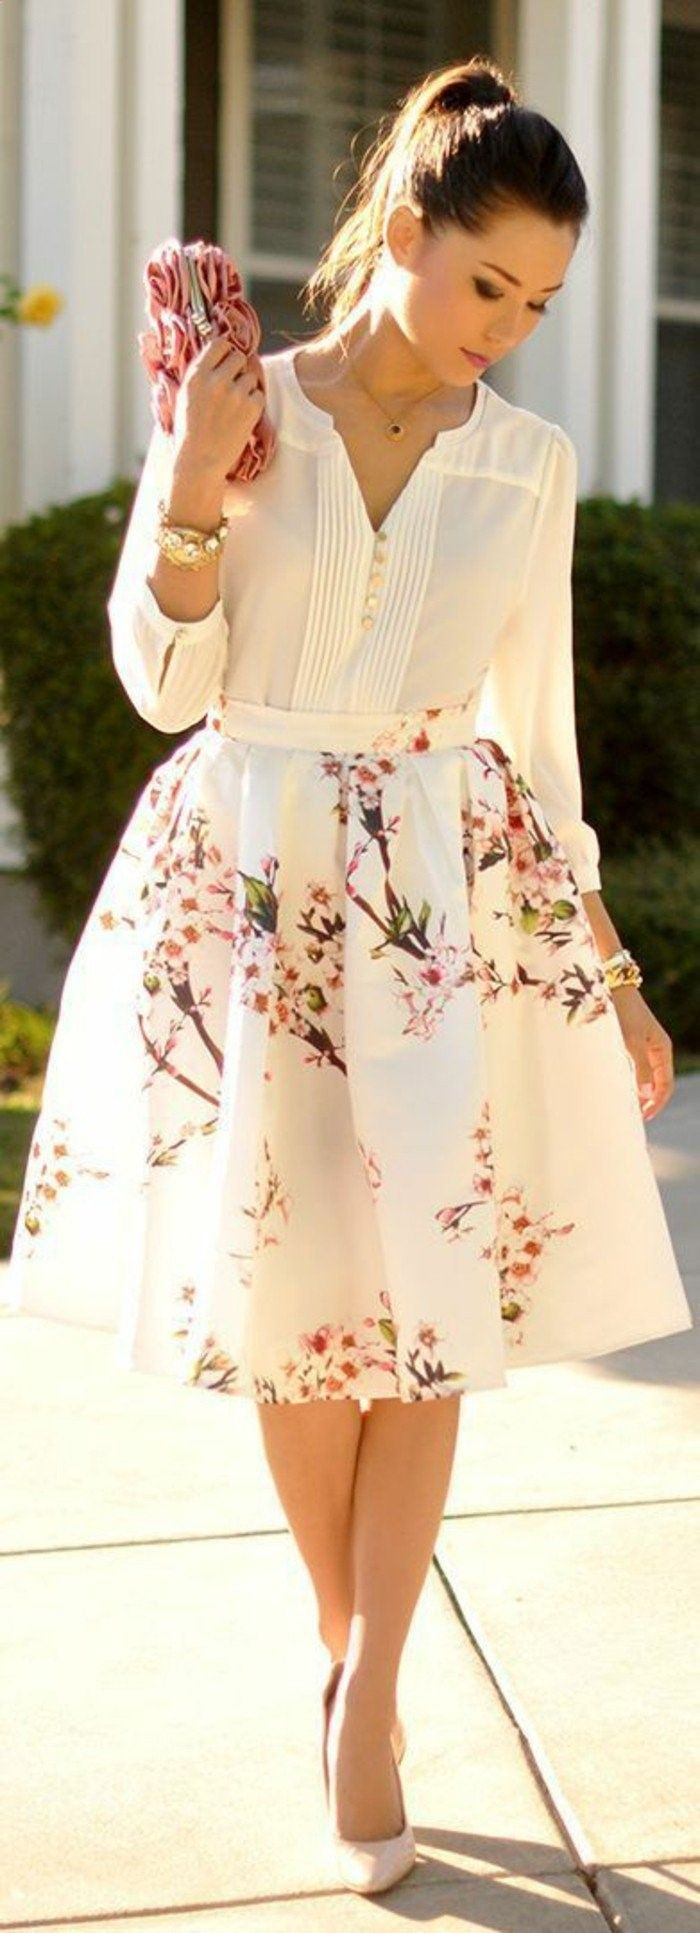 Style casual femme robe casual chic jolie tenue